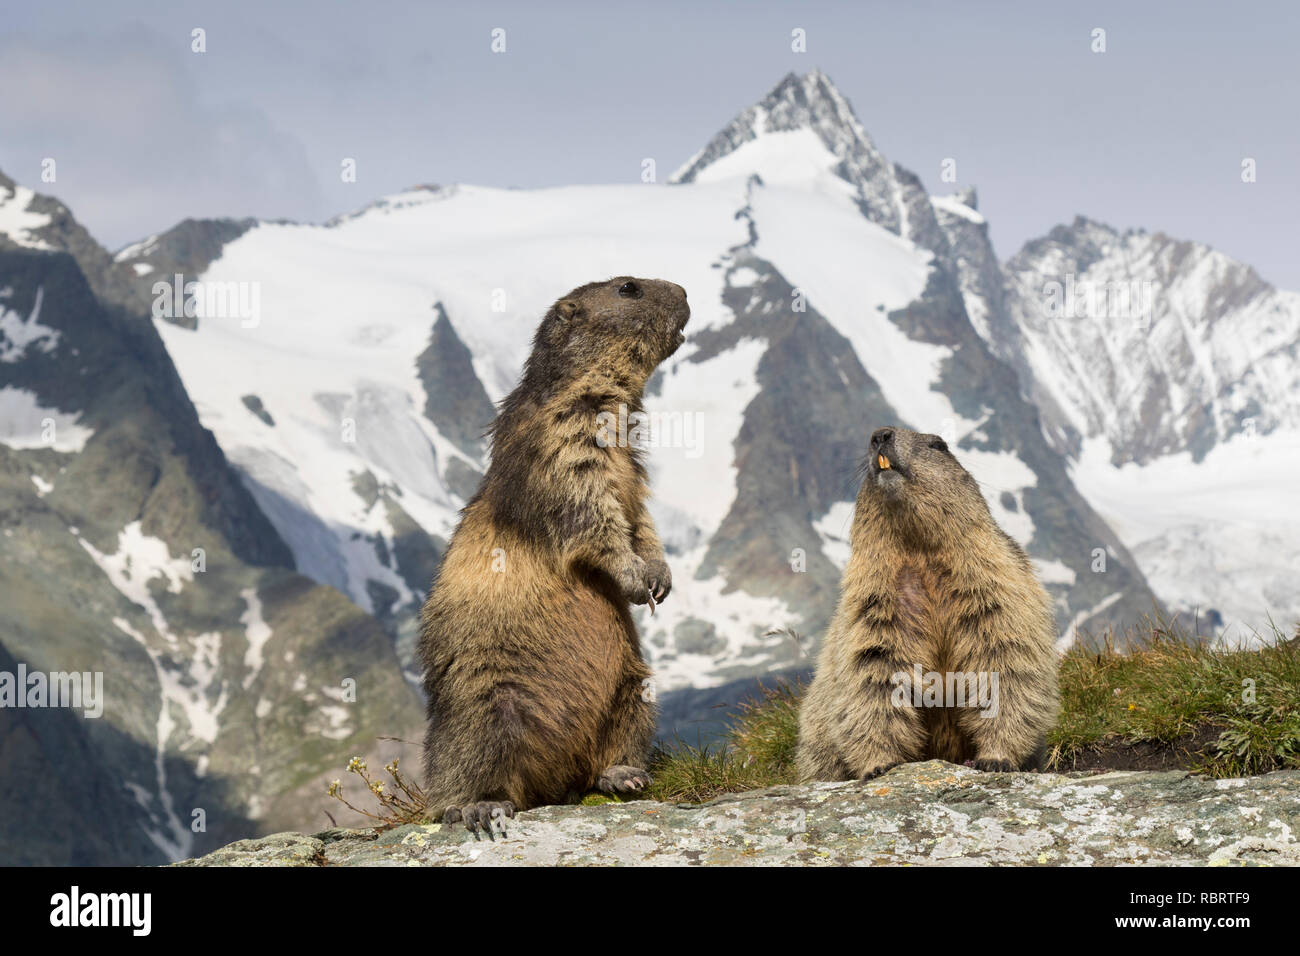 Alpine marmots (Marmota marmota) couple in front of the snow covered mountain Grossglockner, Hohe Tauern National Park, Carinthia, Austria - Stock Image